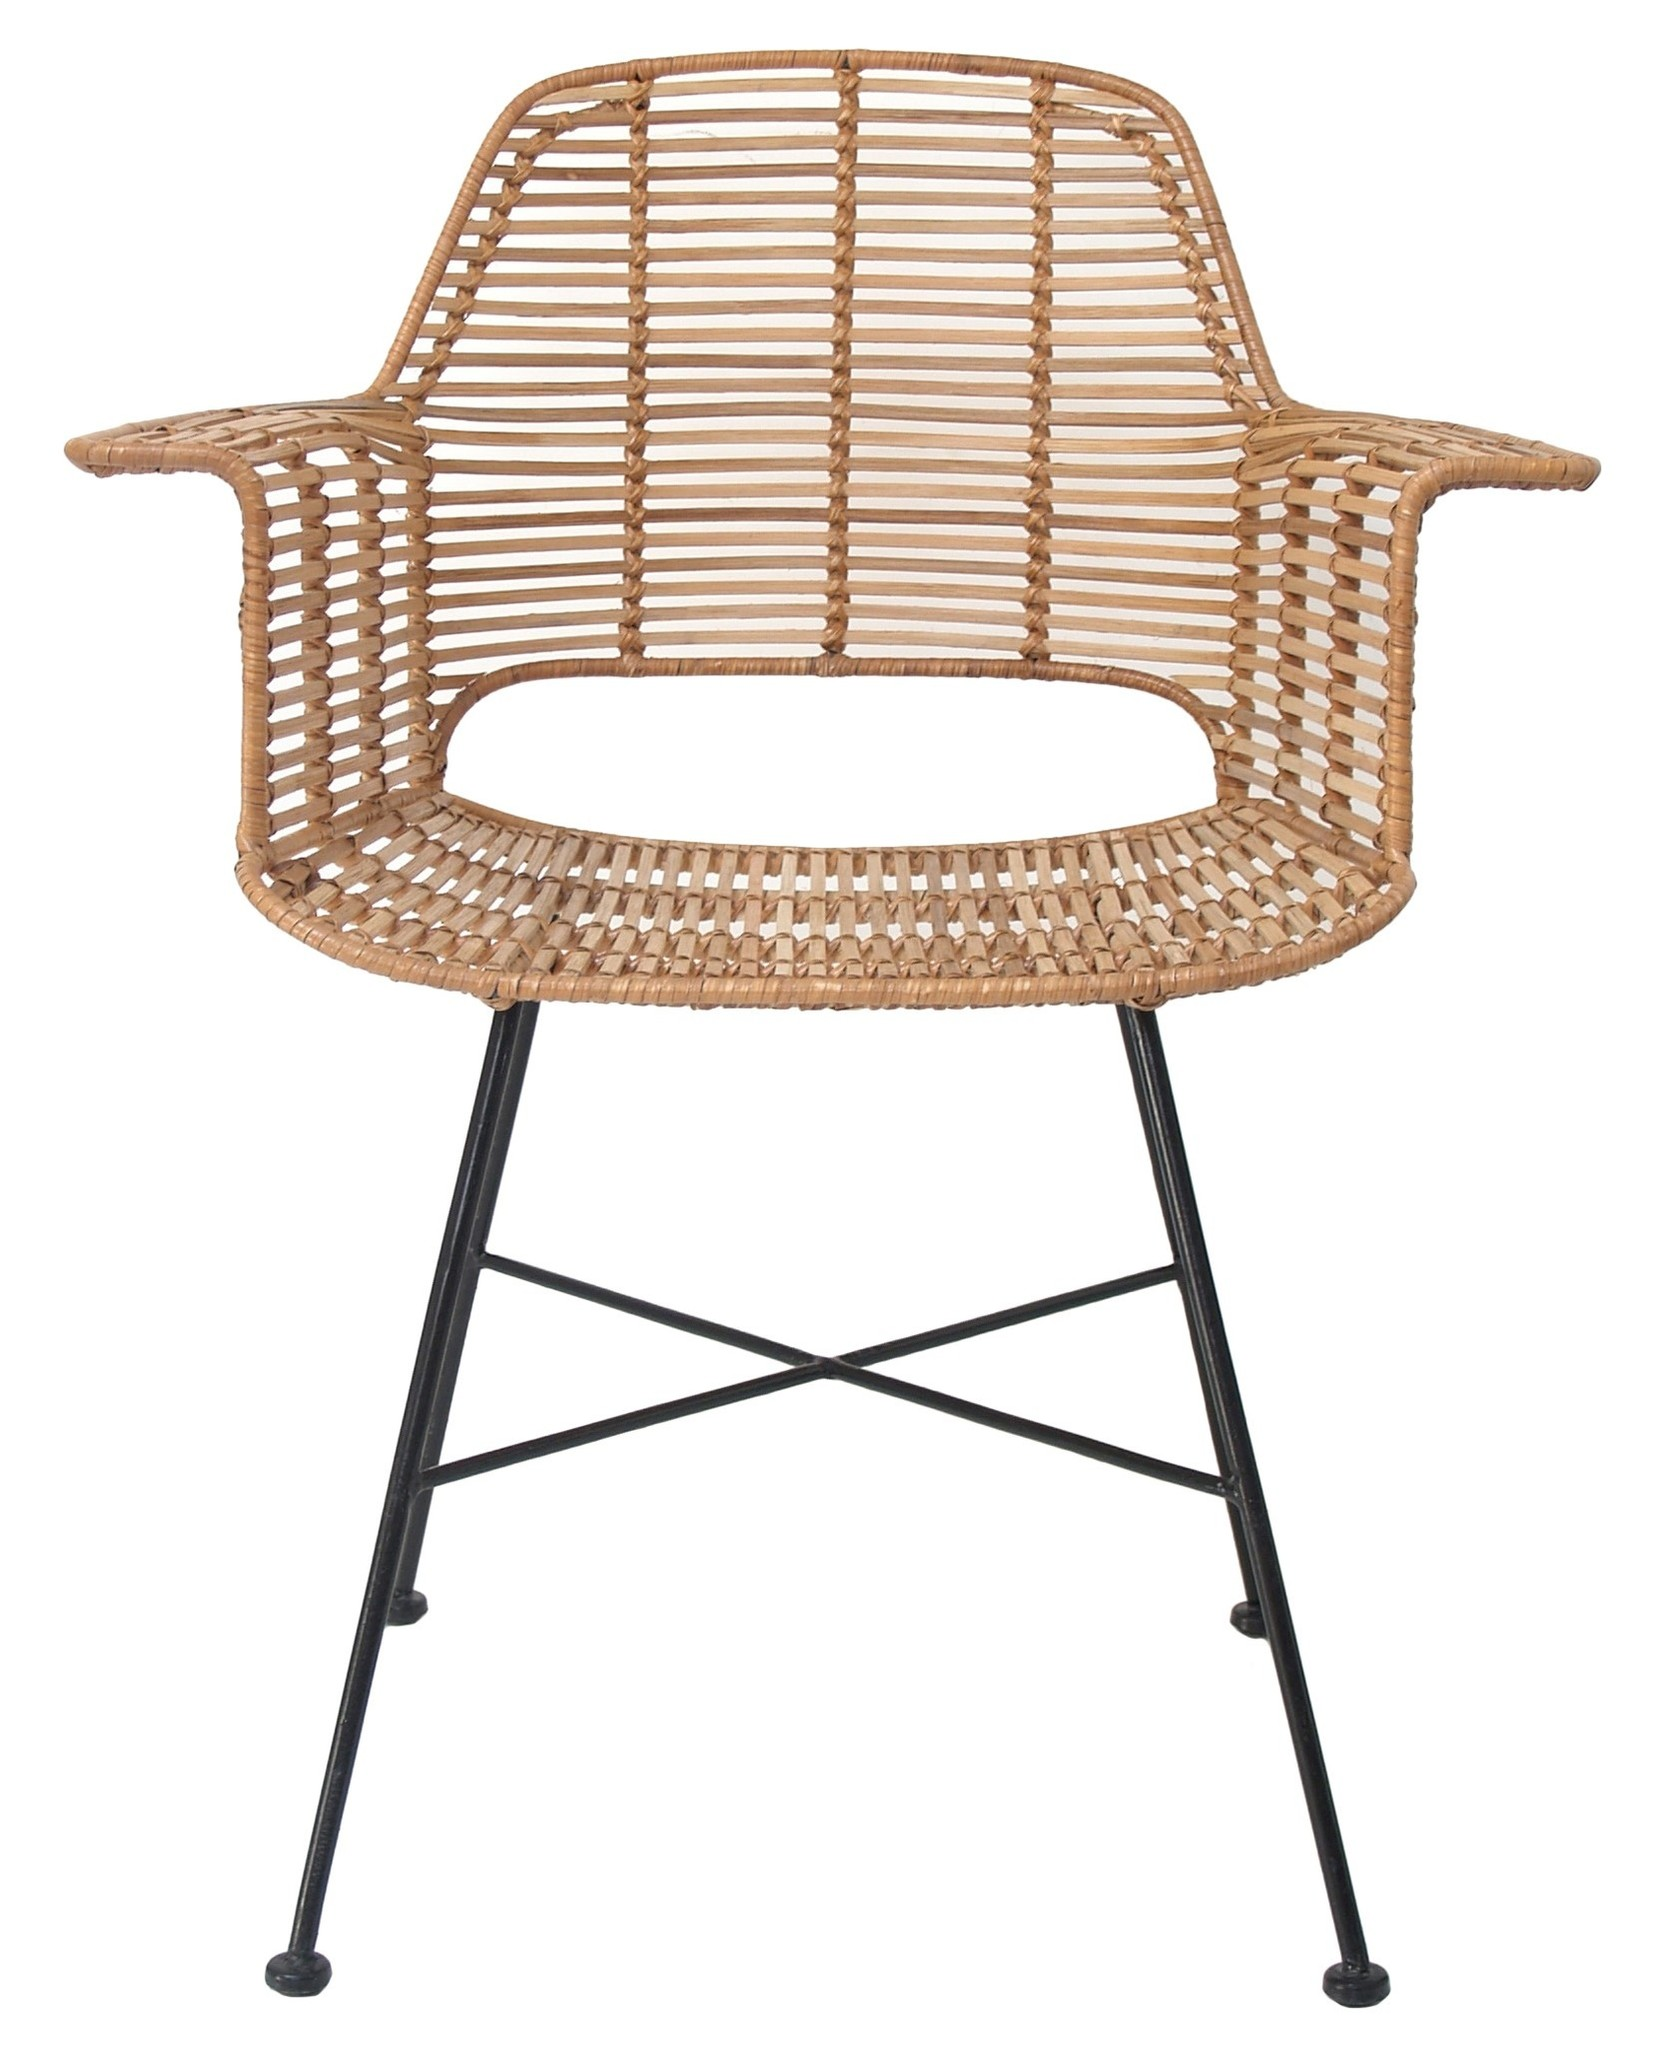 Stoel rattan tub chair 67x55x83cm Natural-1